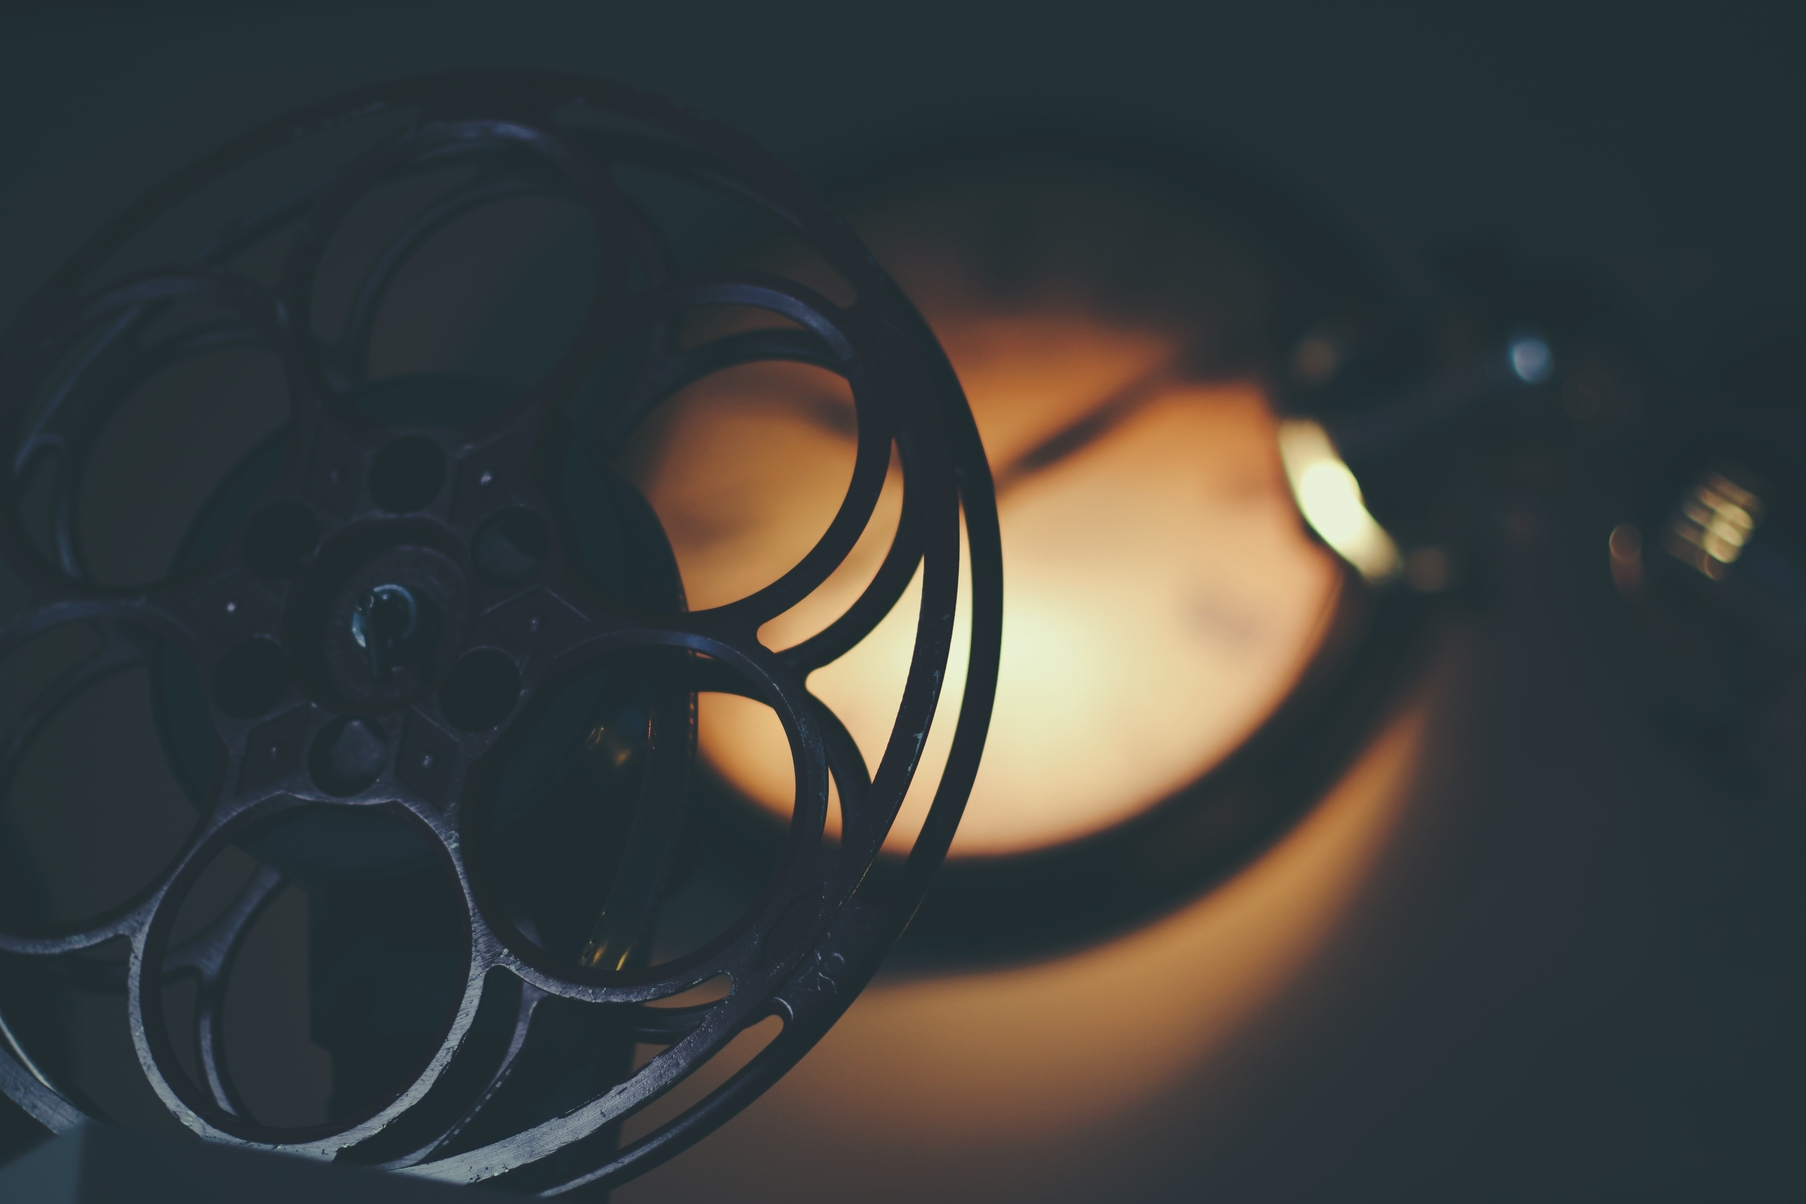 An old film reel with a circle of light behind it